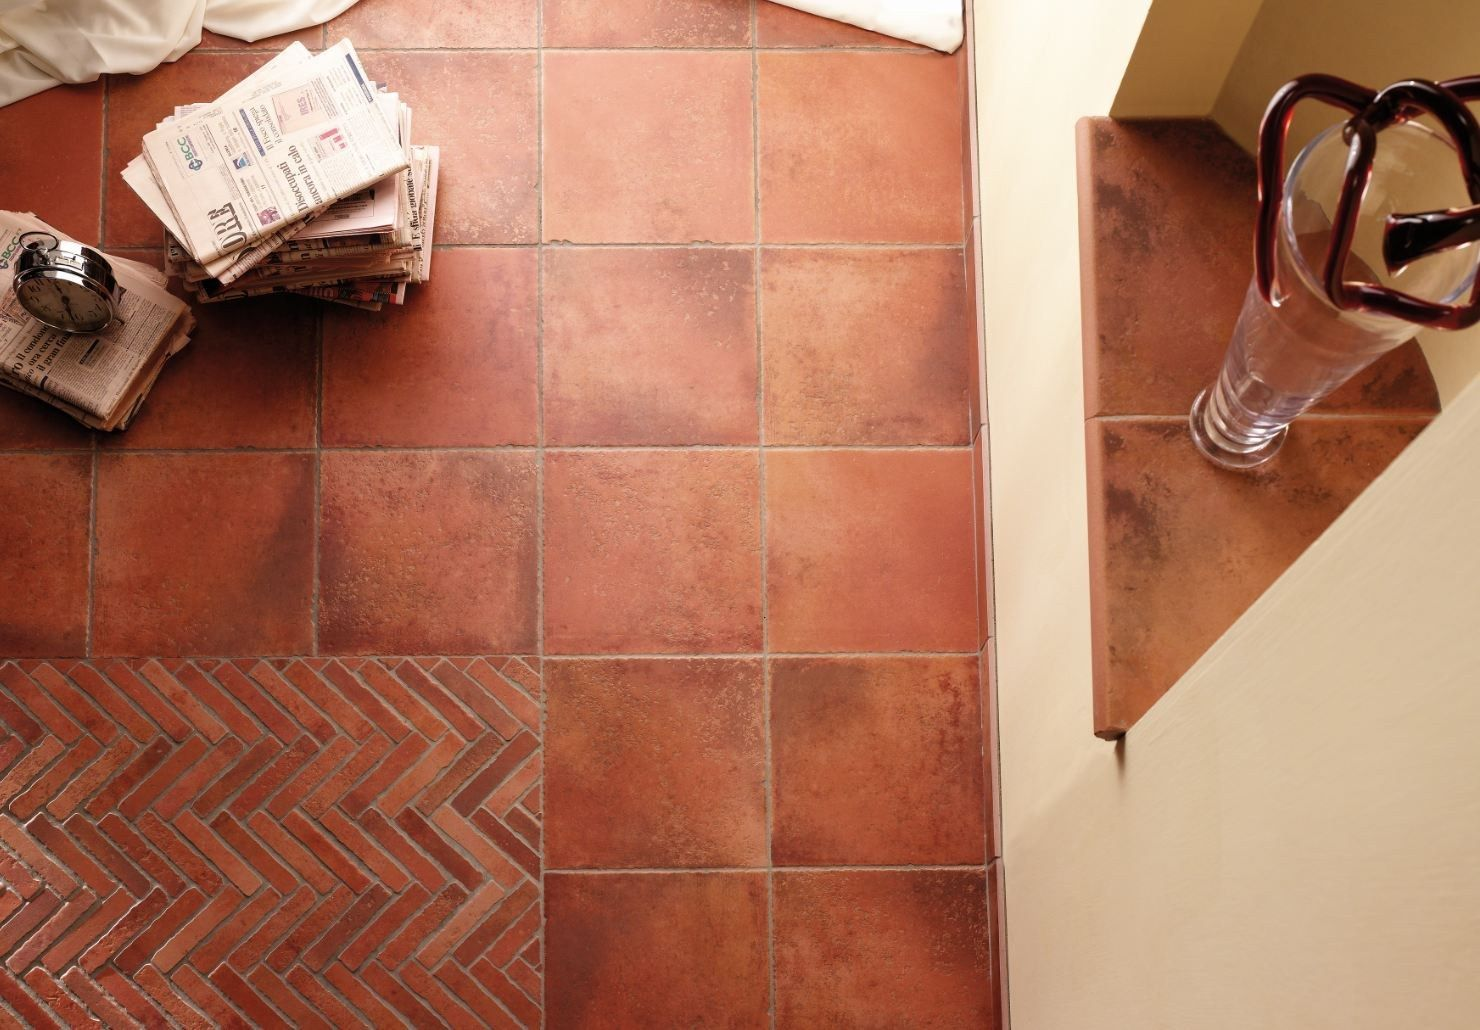 Terracota floor tiles interiors pinterest terracotta floor terracota floor tiles dailygadgetfo Choice Image